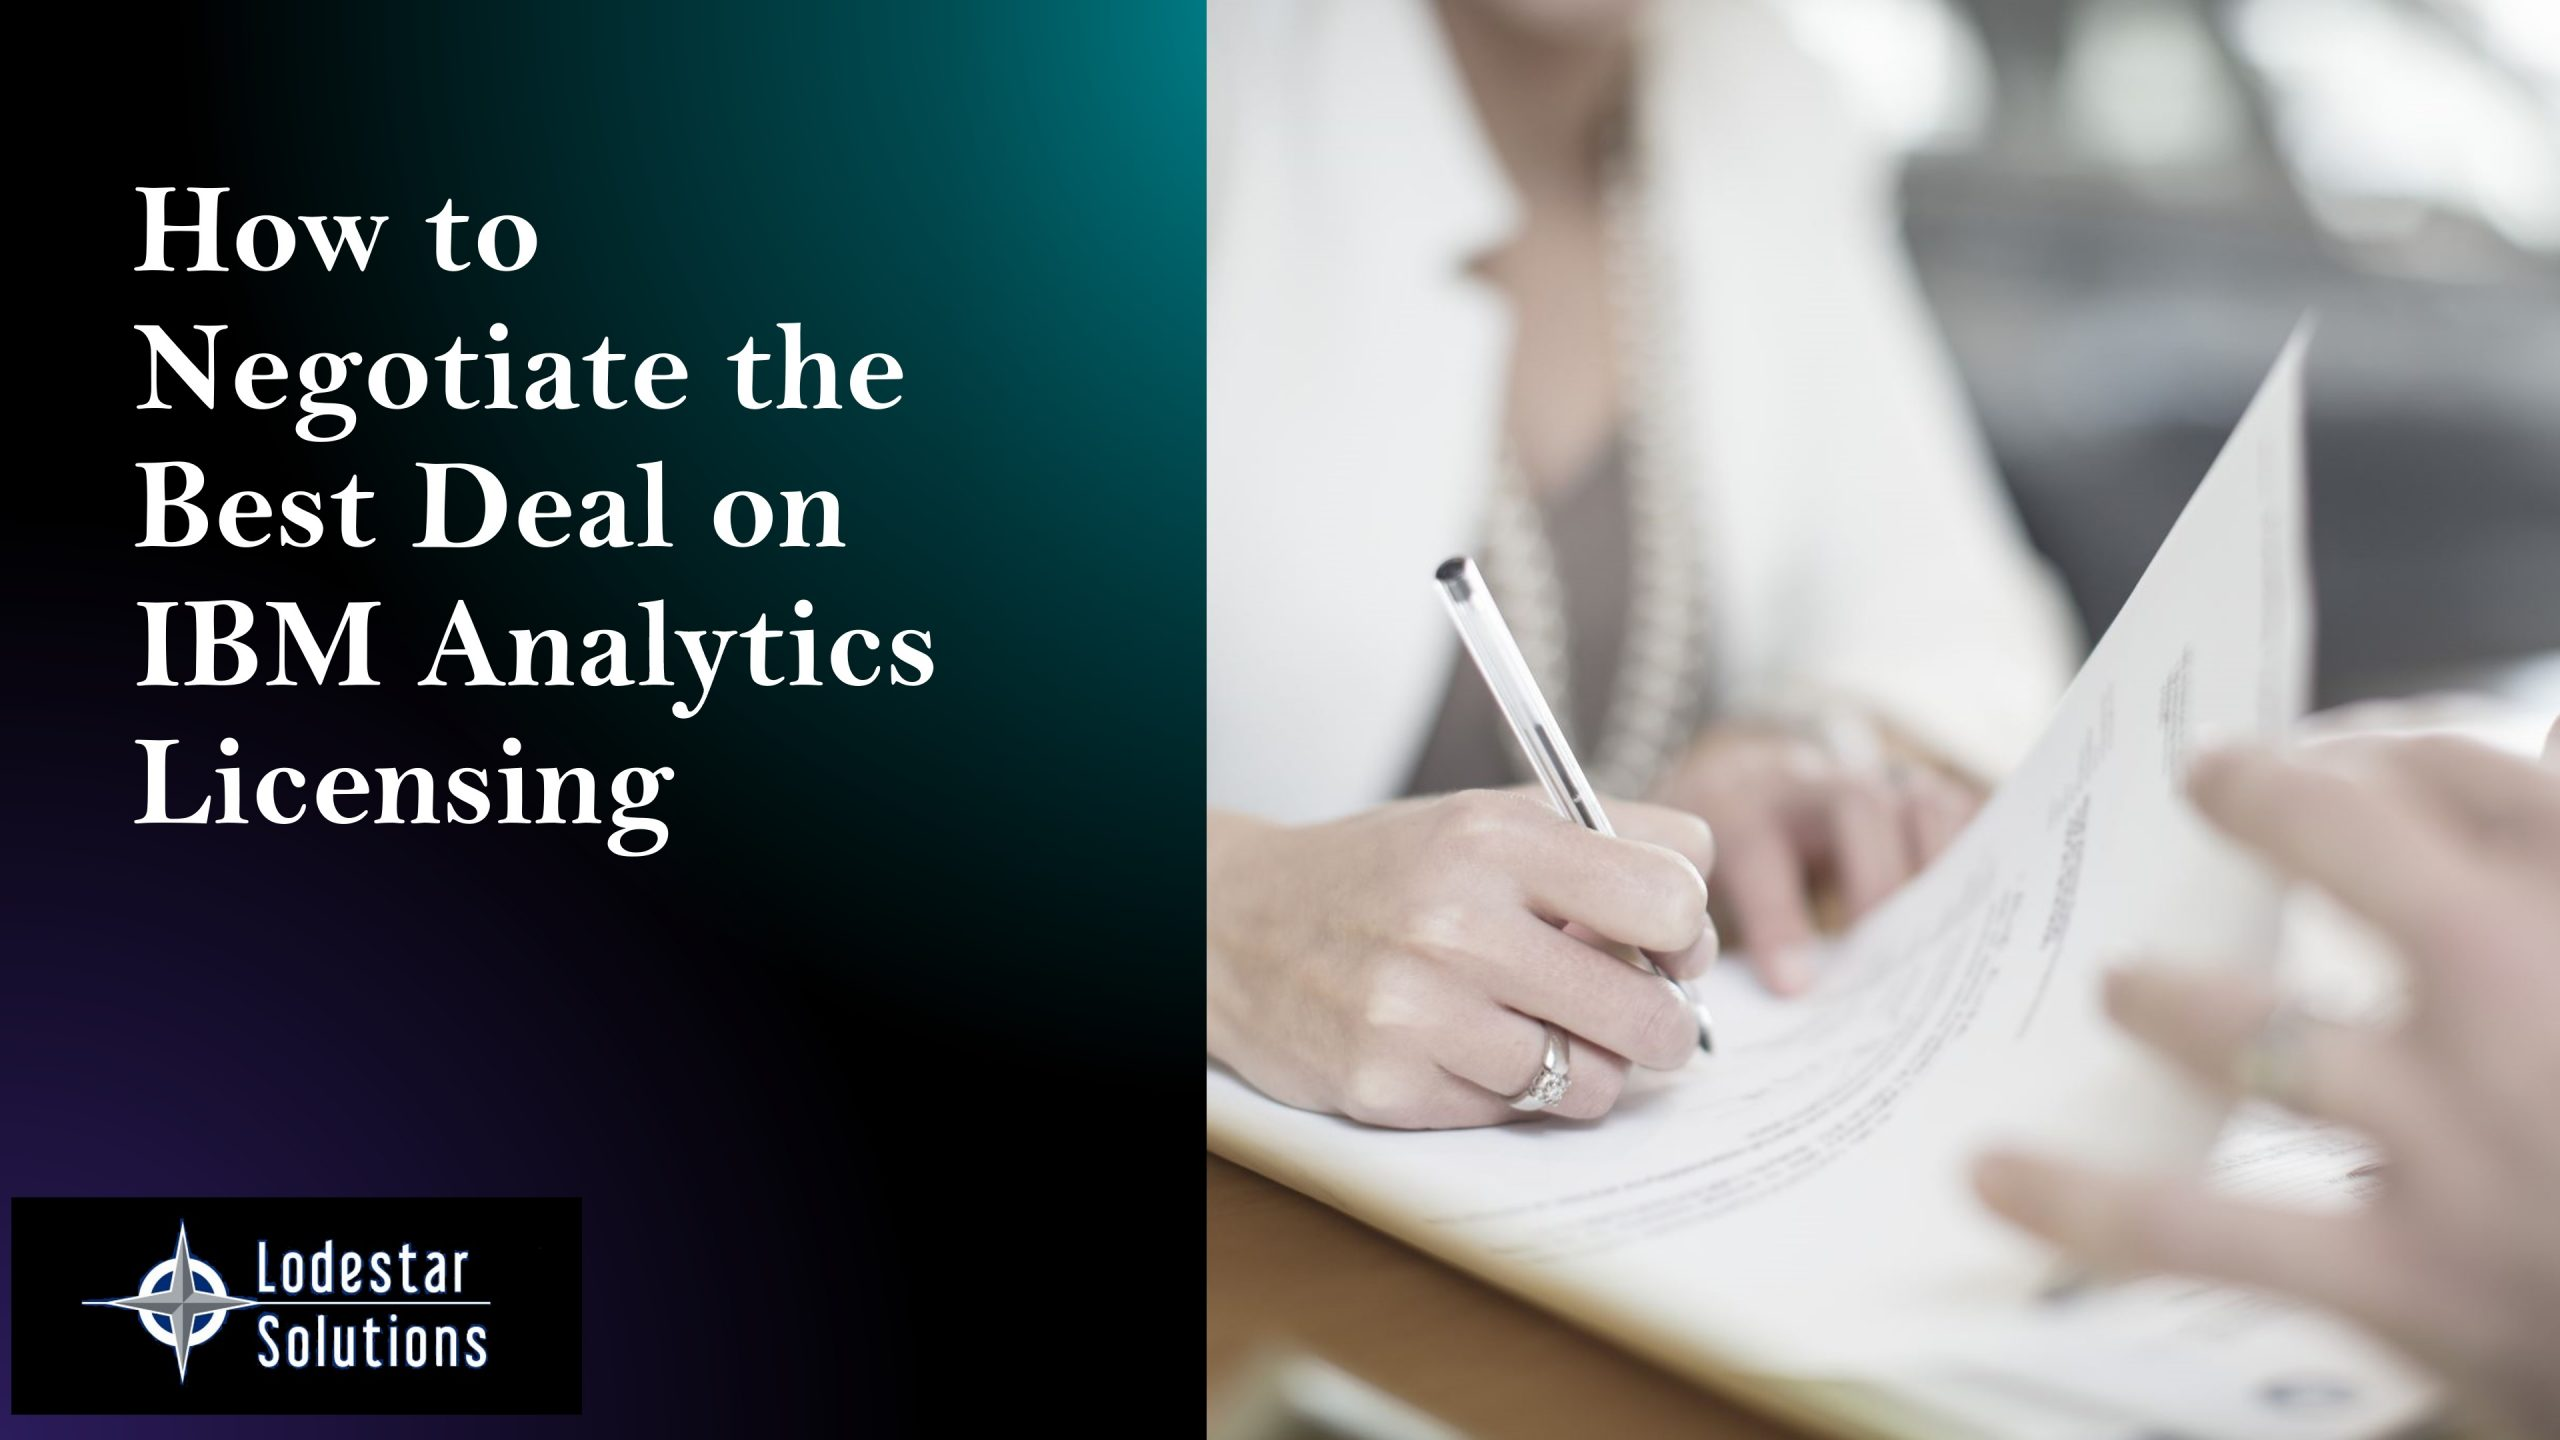 How to Negotiate the best deal on IBM Analytics Licensing